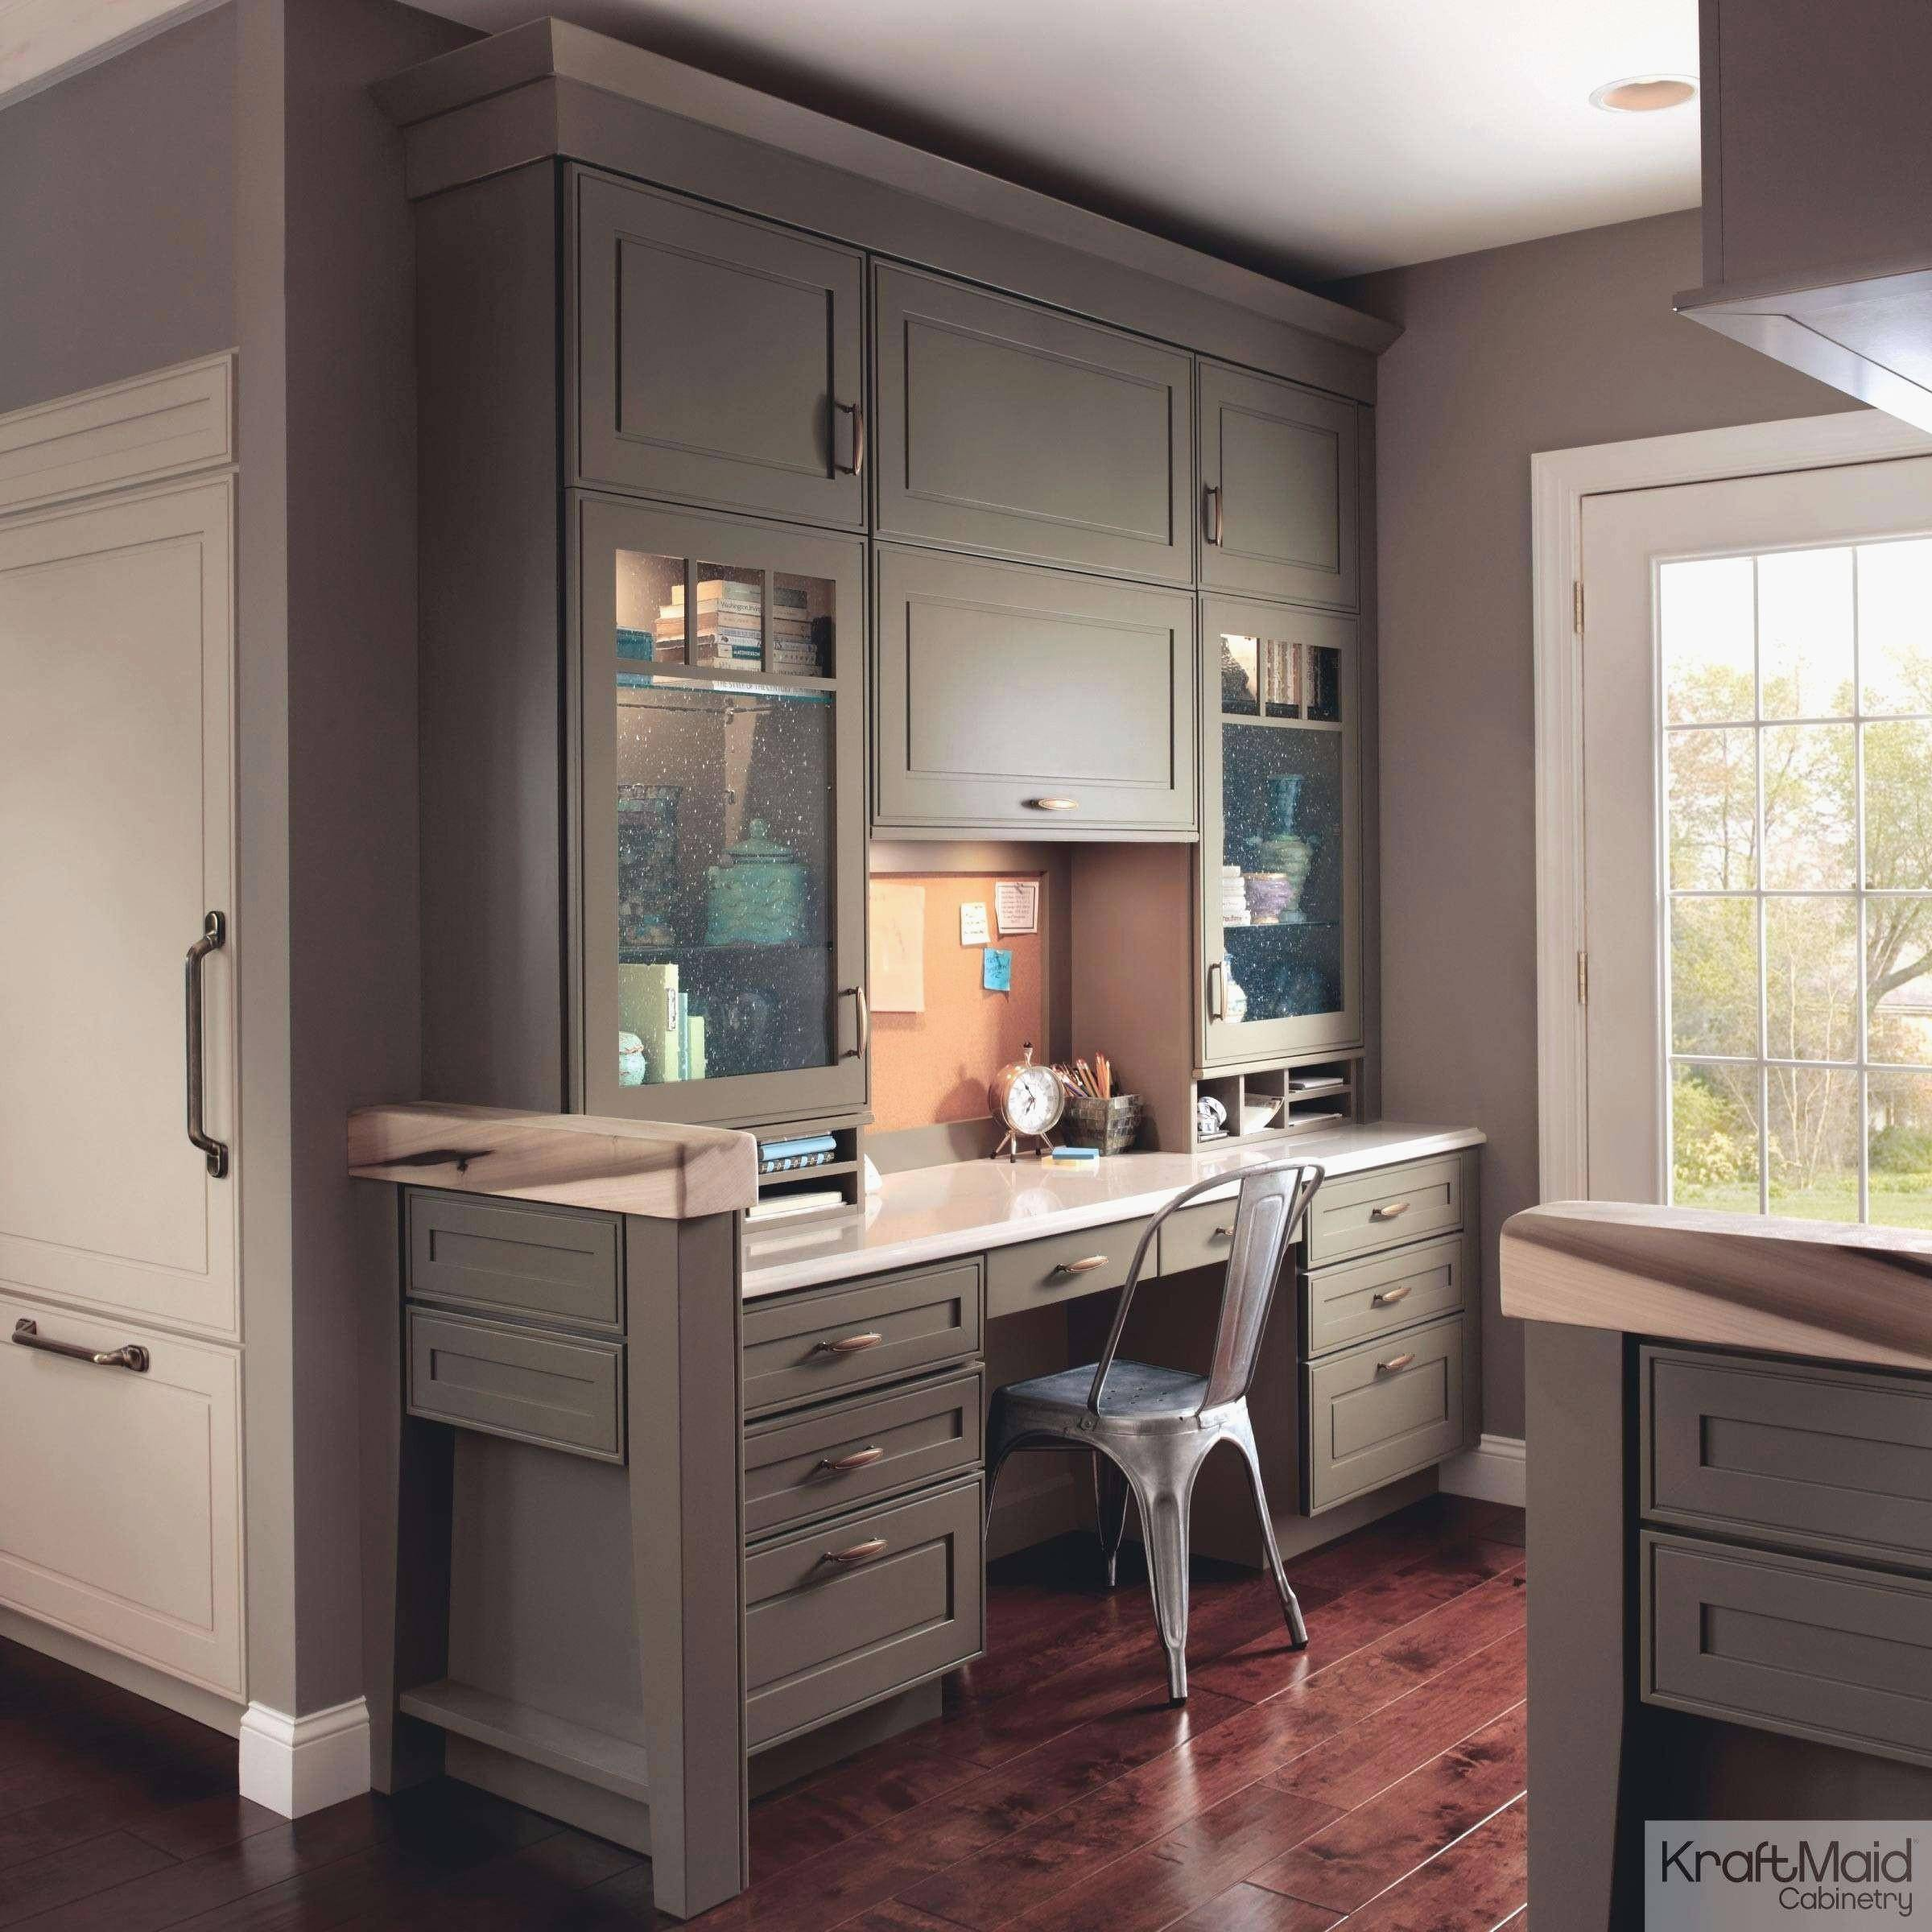 houzz hardwood flooring ideas of 10 lovely houzz kitchen cabinets images inspiration throughout pickled maple kitchen cabinets awesome kitchen cabinet 0d kitchen inspiration backsplash ideas